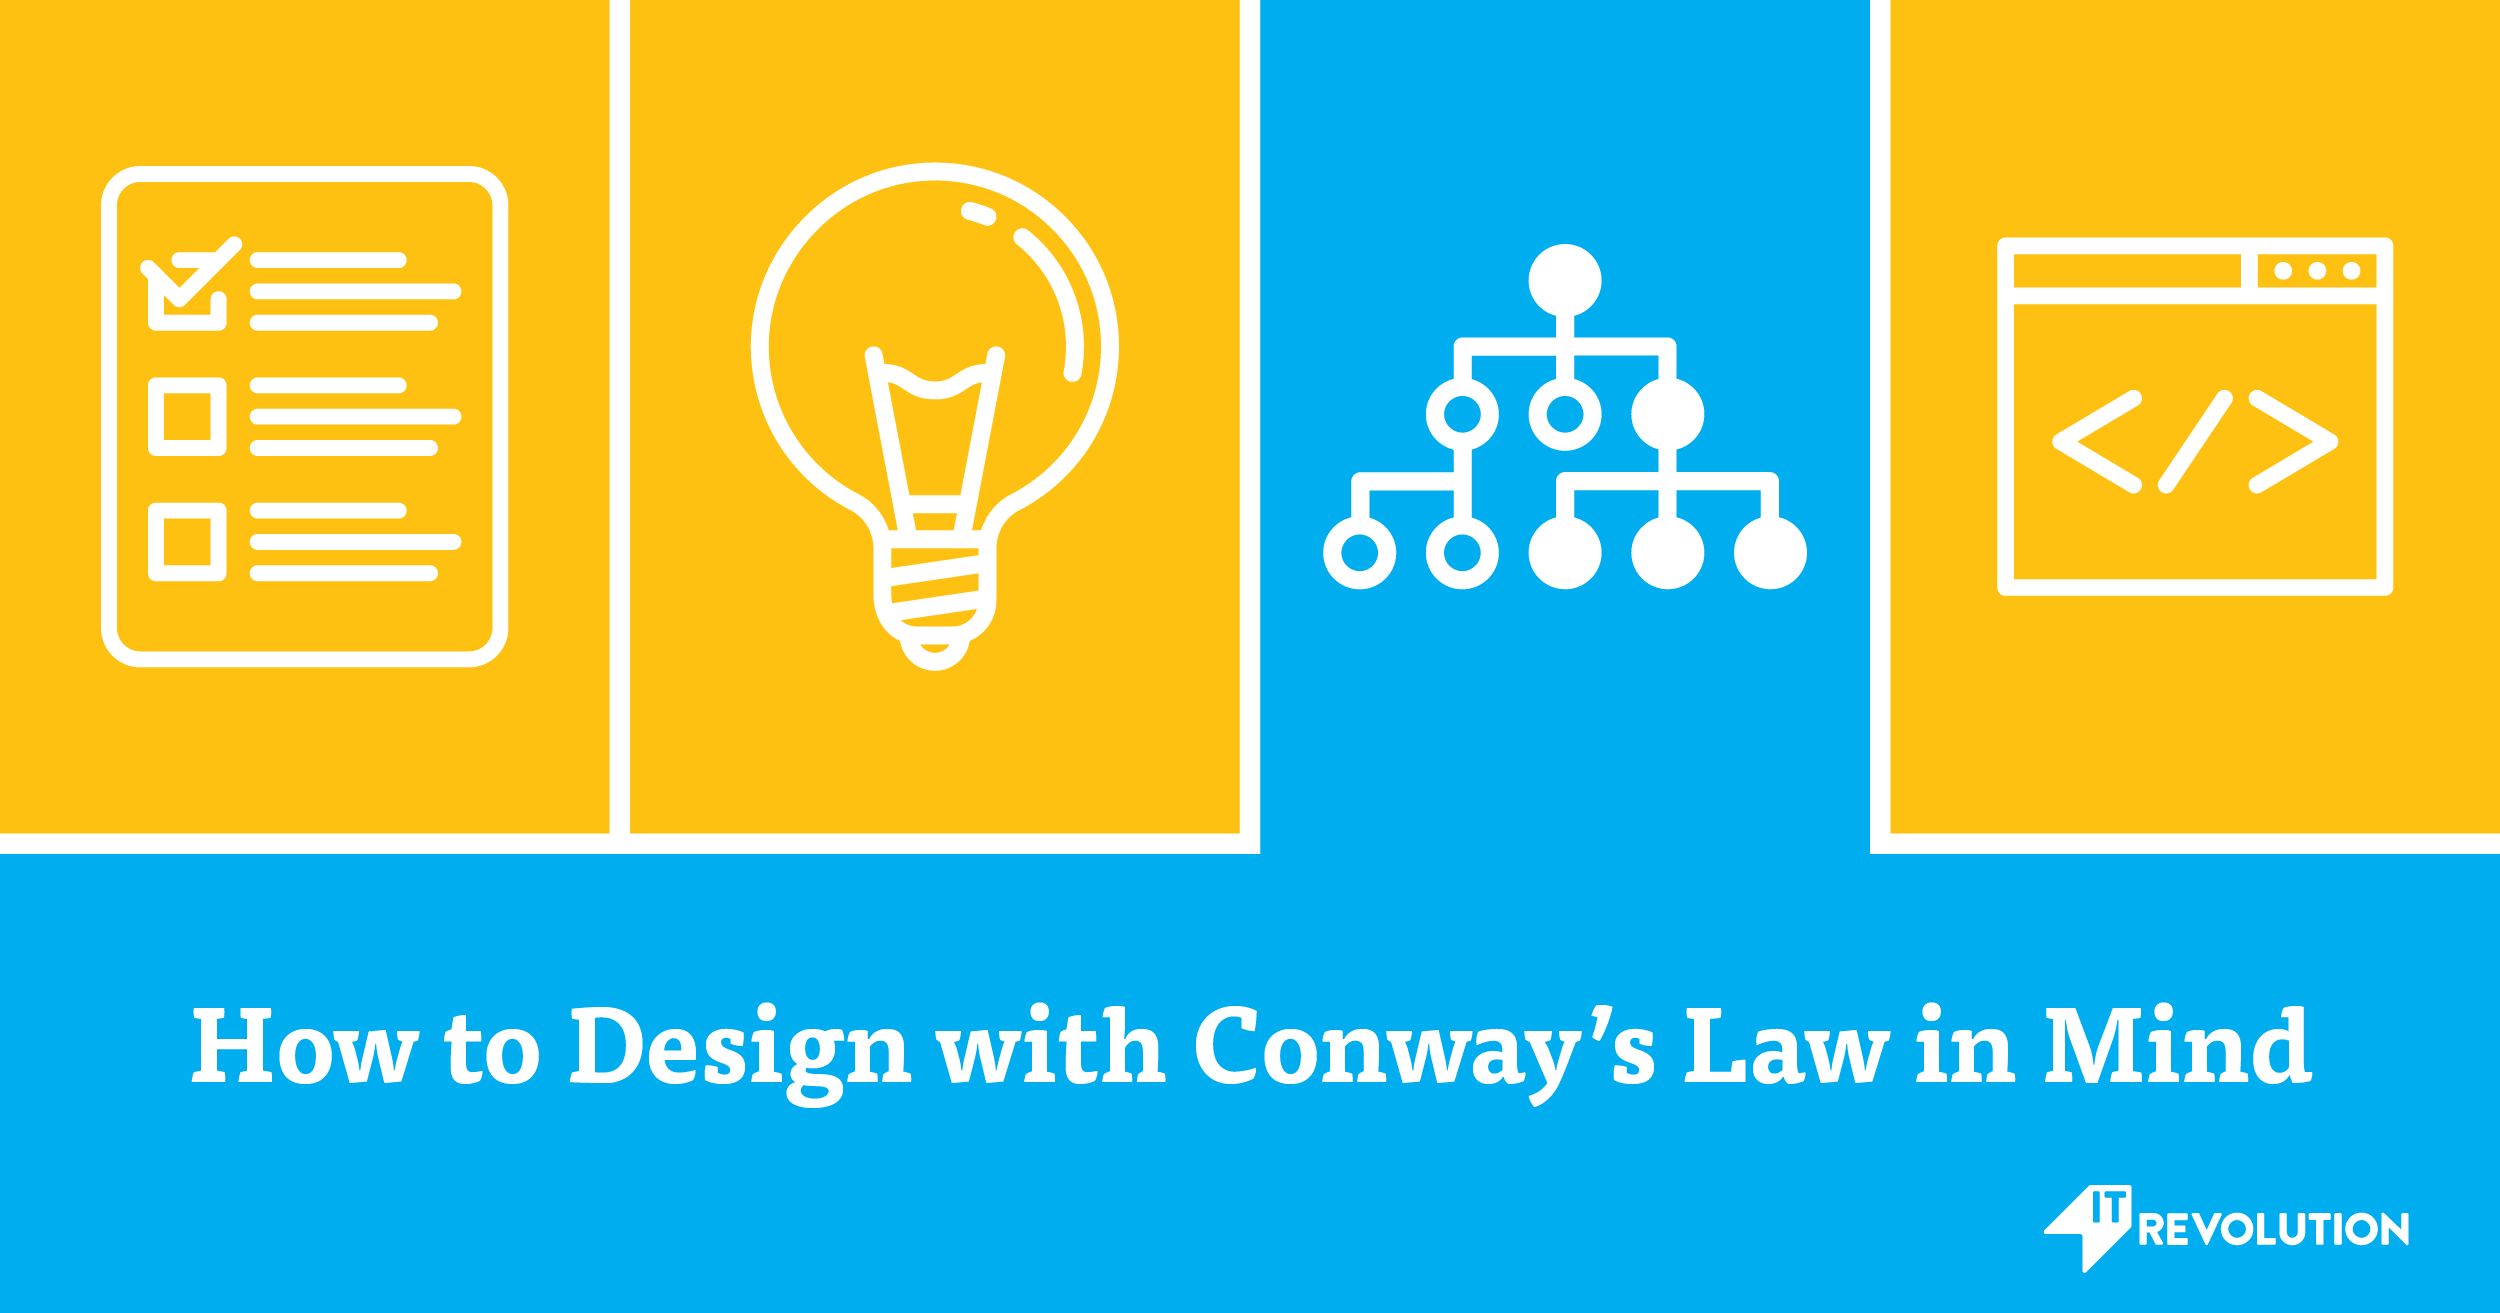 how to design with conway's law in mind